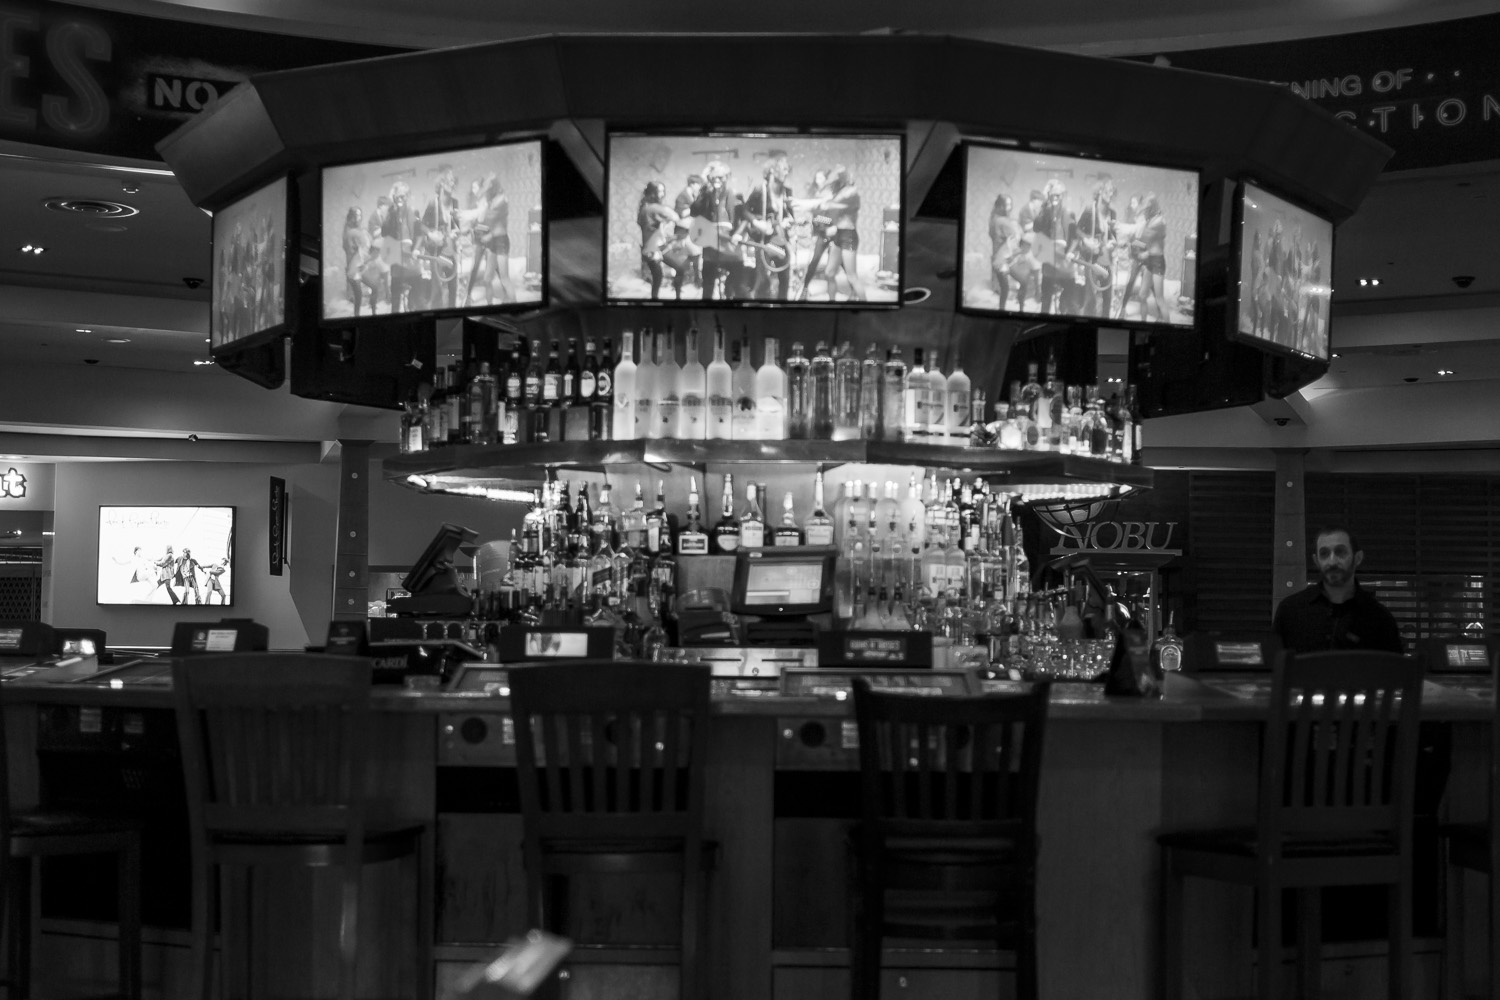 One of the bars located on the casino floor